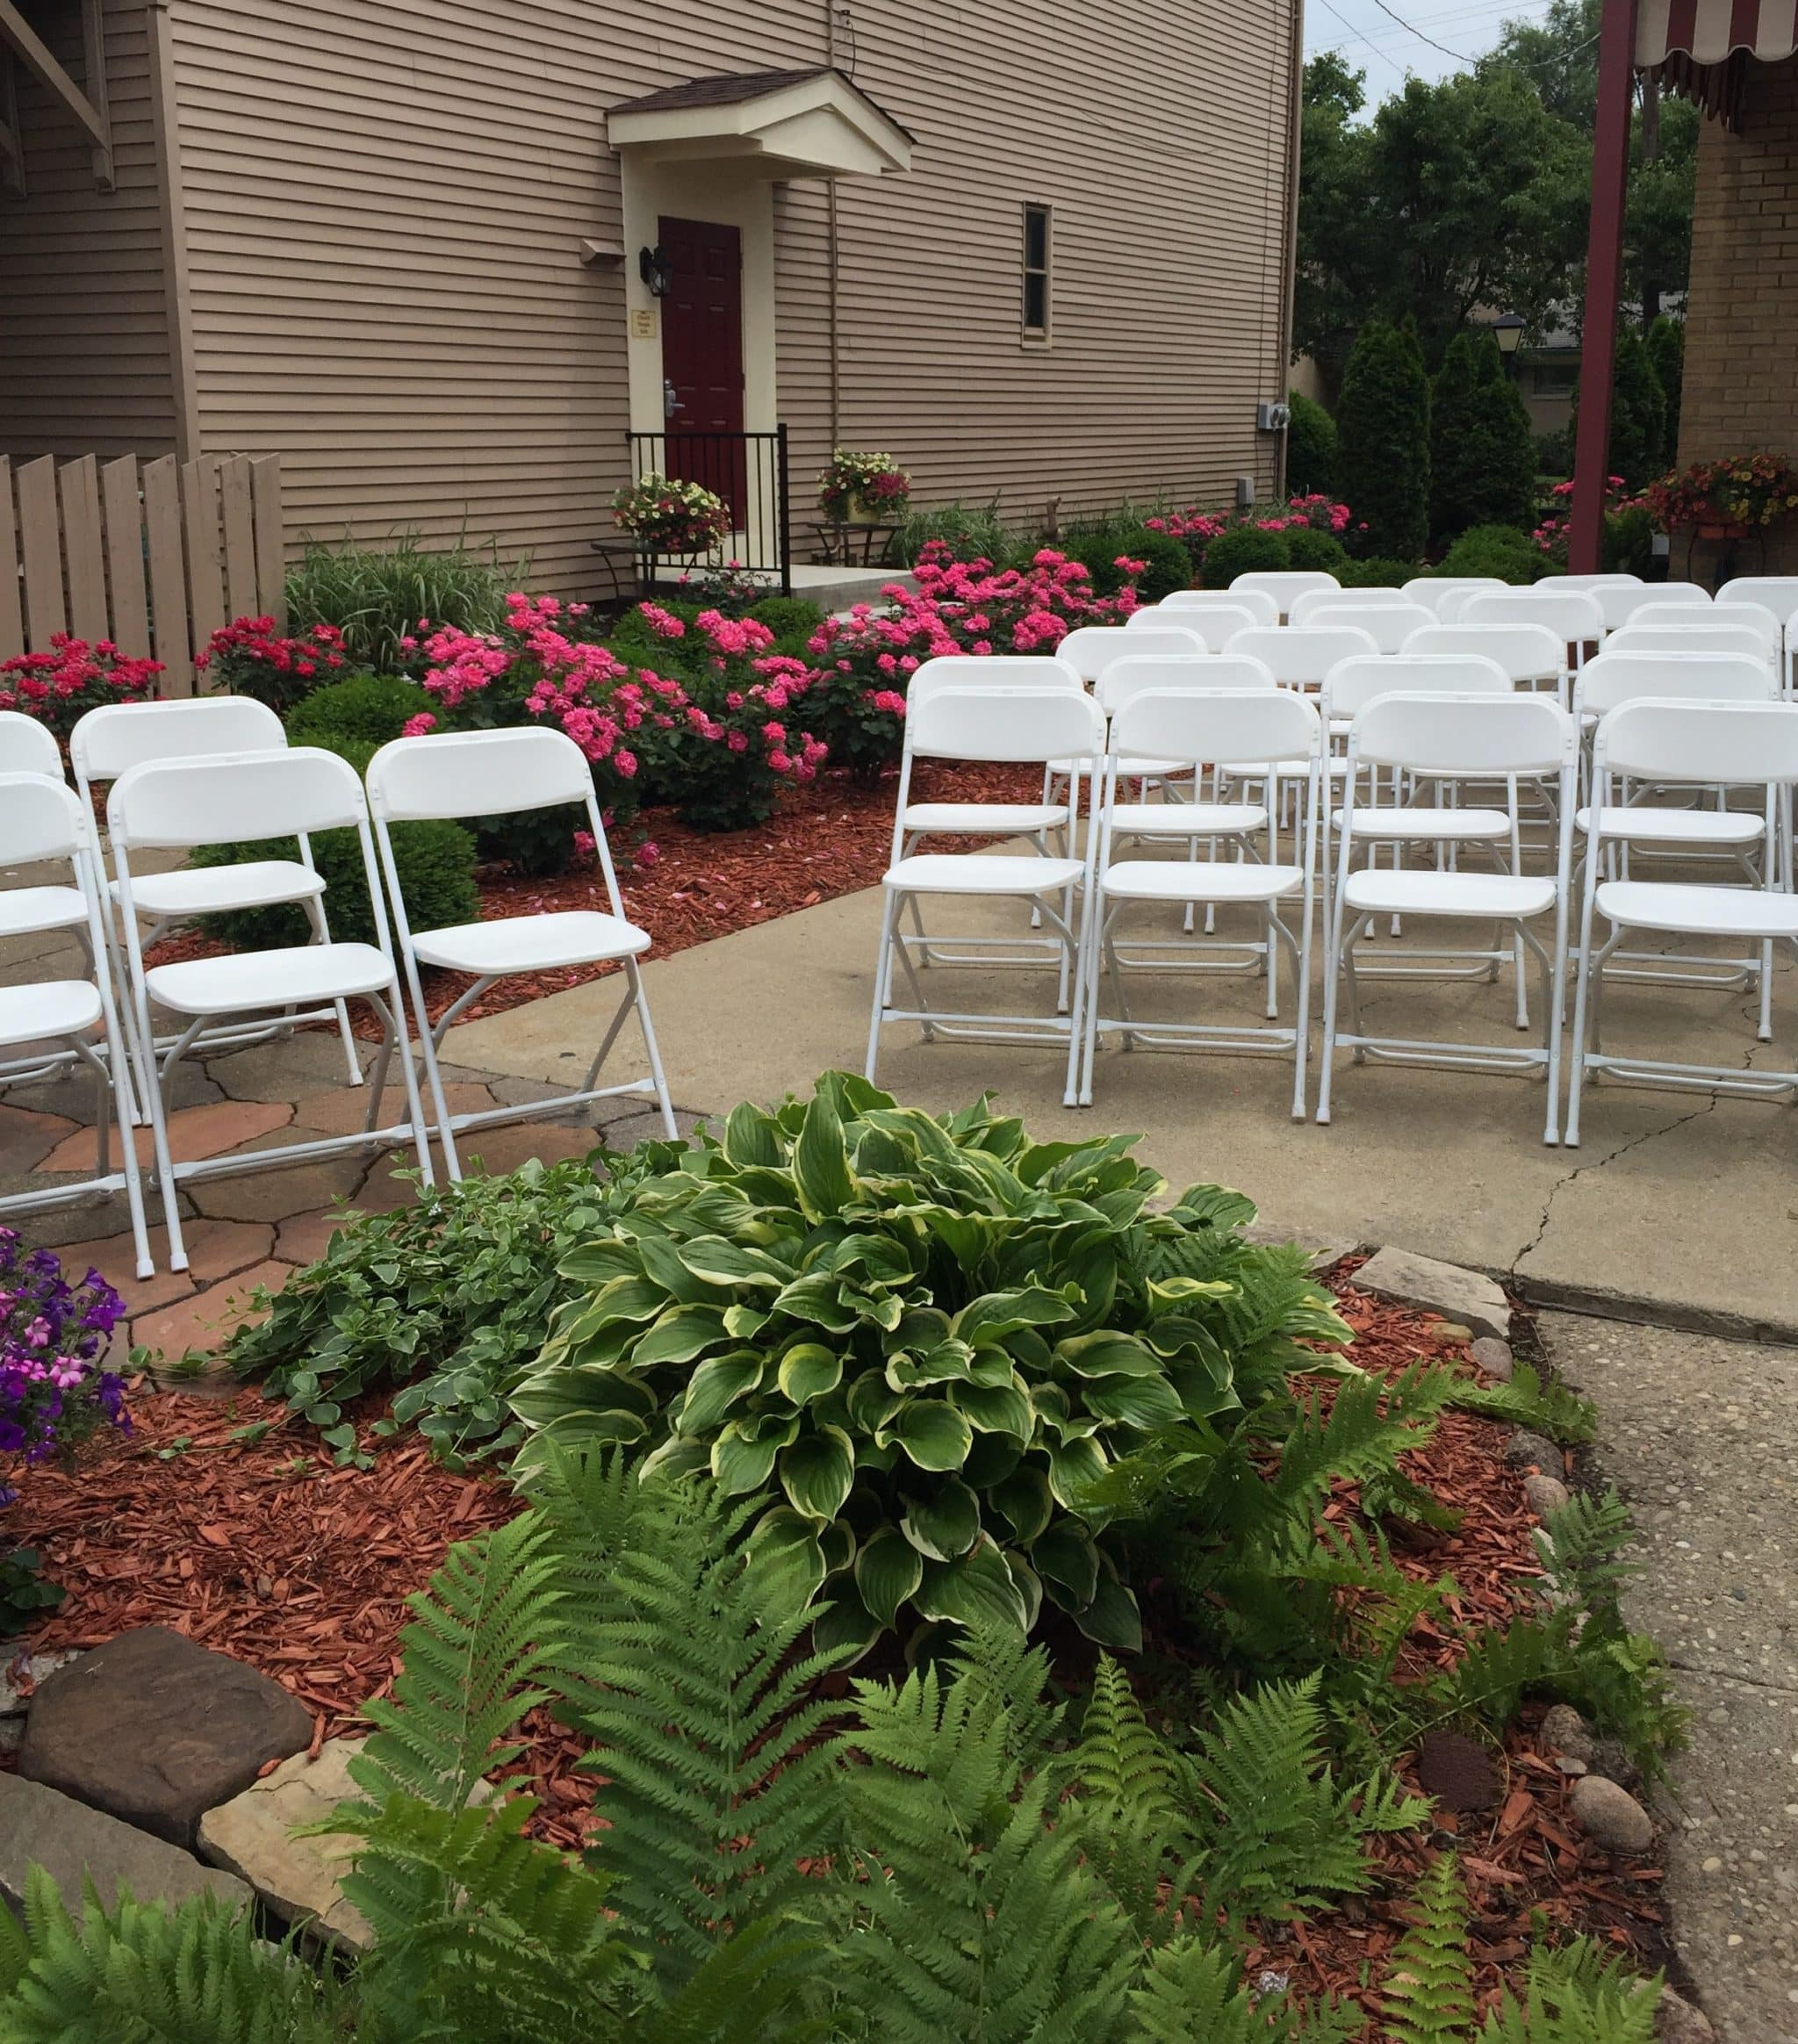 white chairs sitting among pink roses and green plants